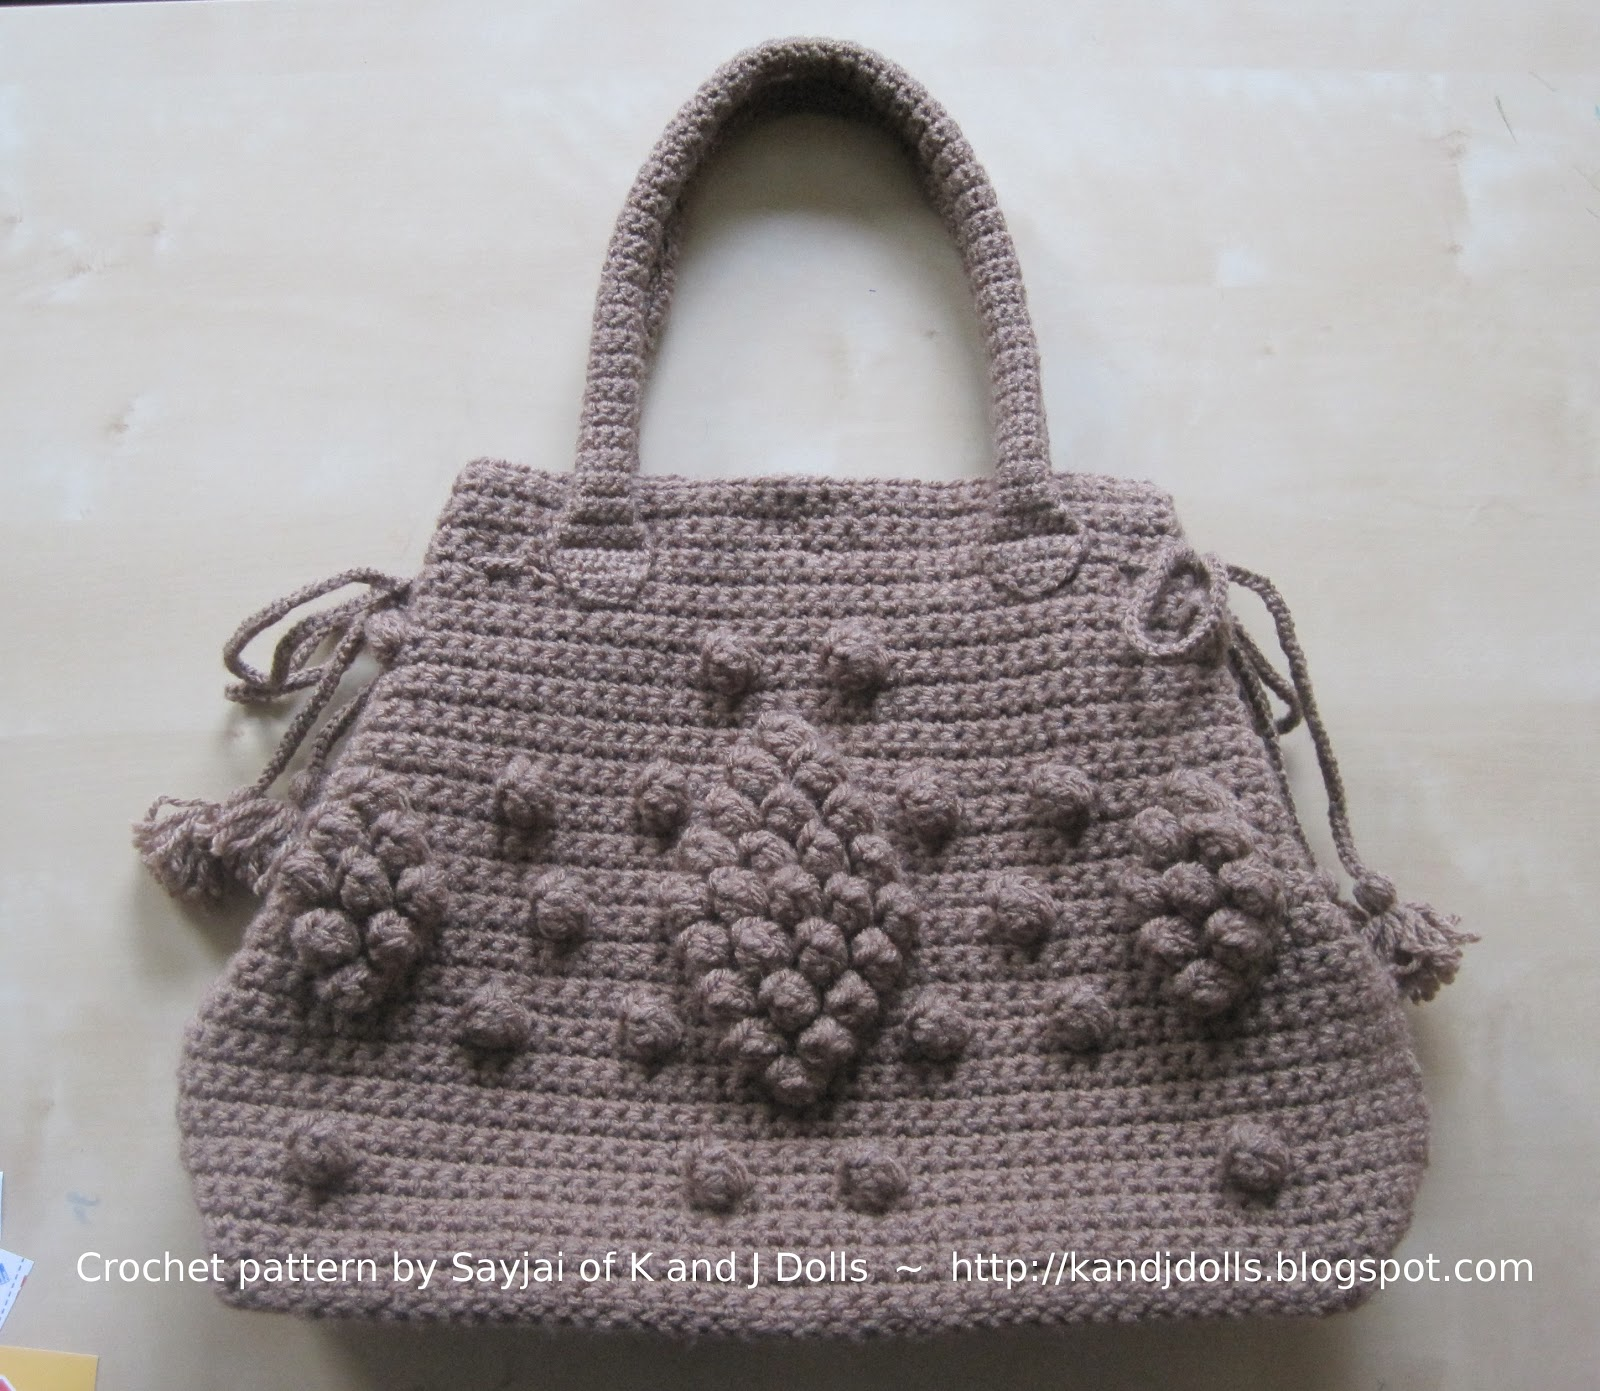 Free Crochet Bag : Taupe Bag crochet pattern - Sayjai Amigurumi Crochet Patterns ~ K and ...